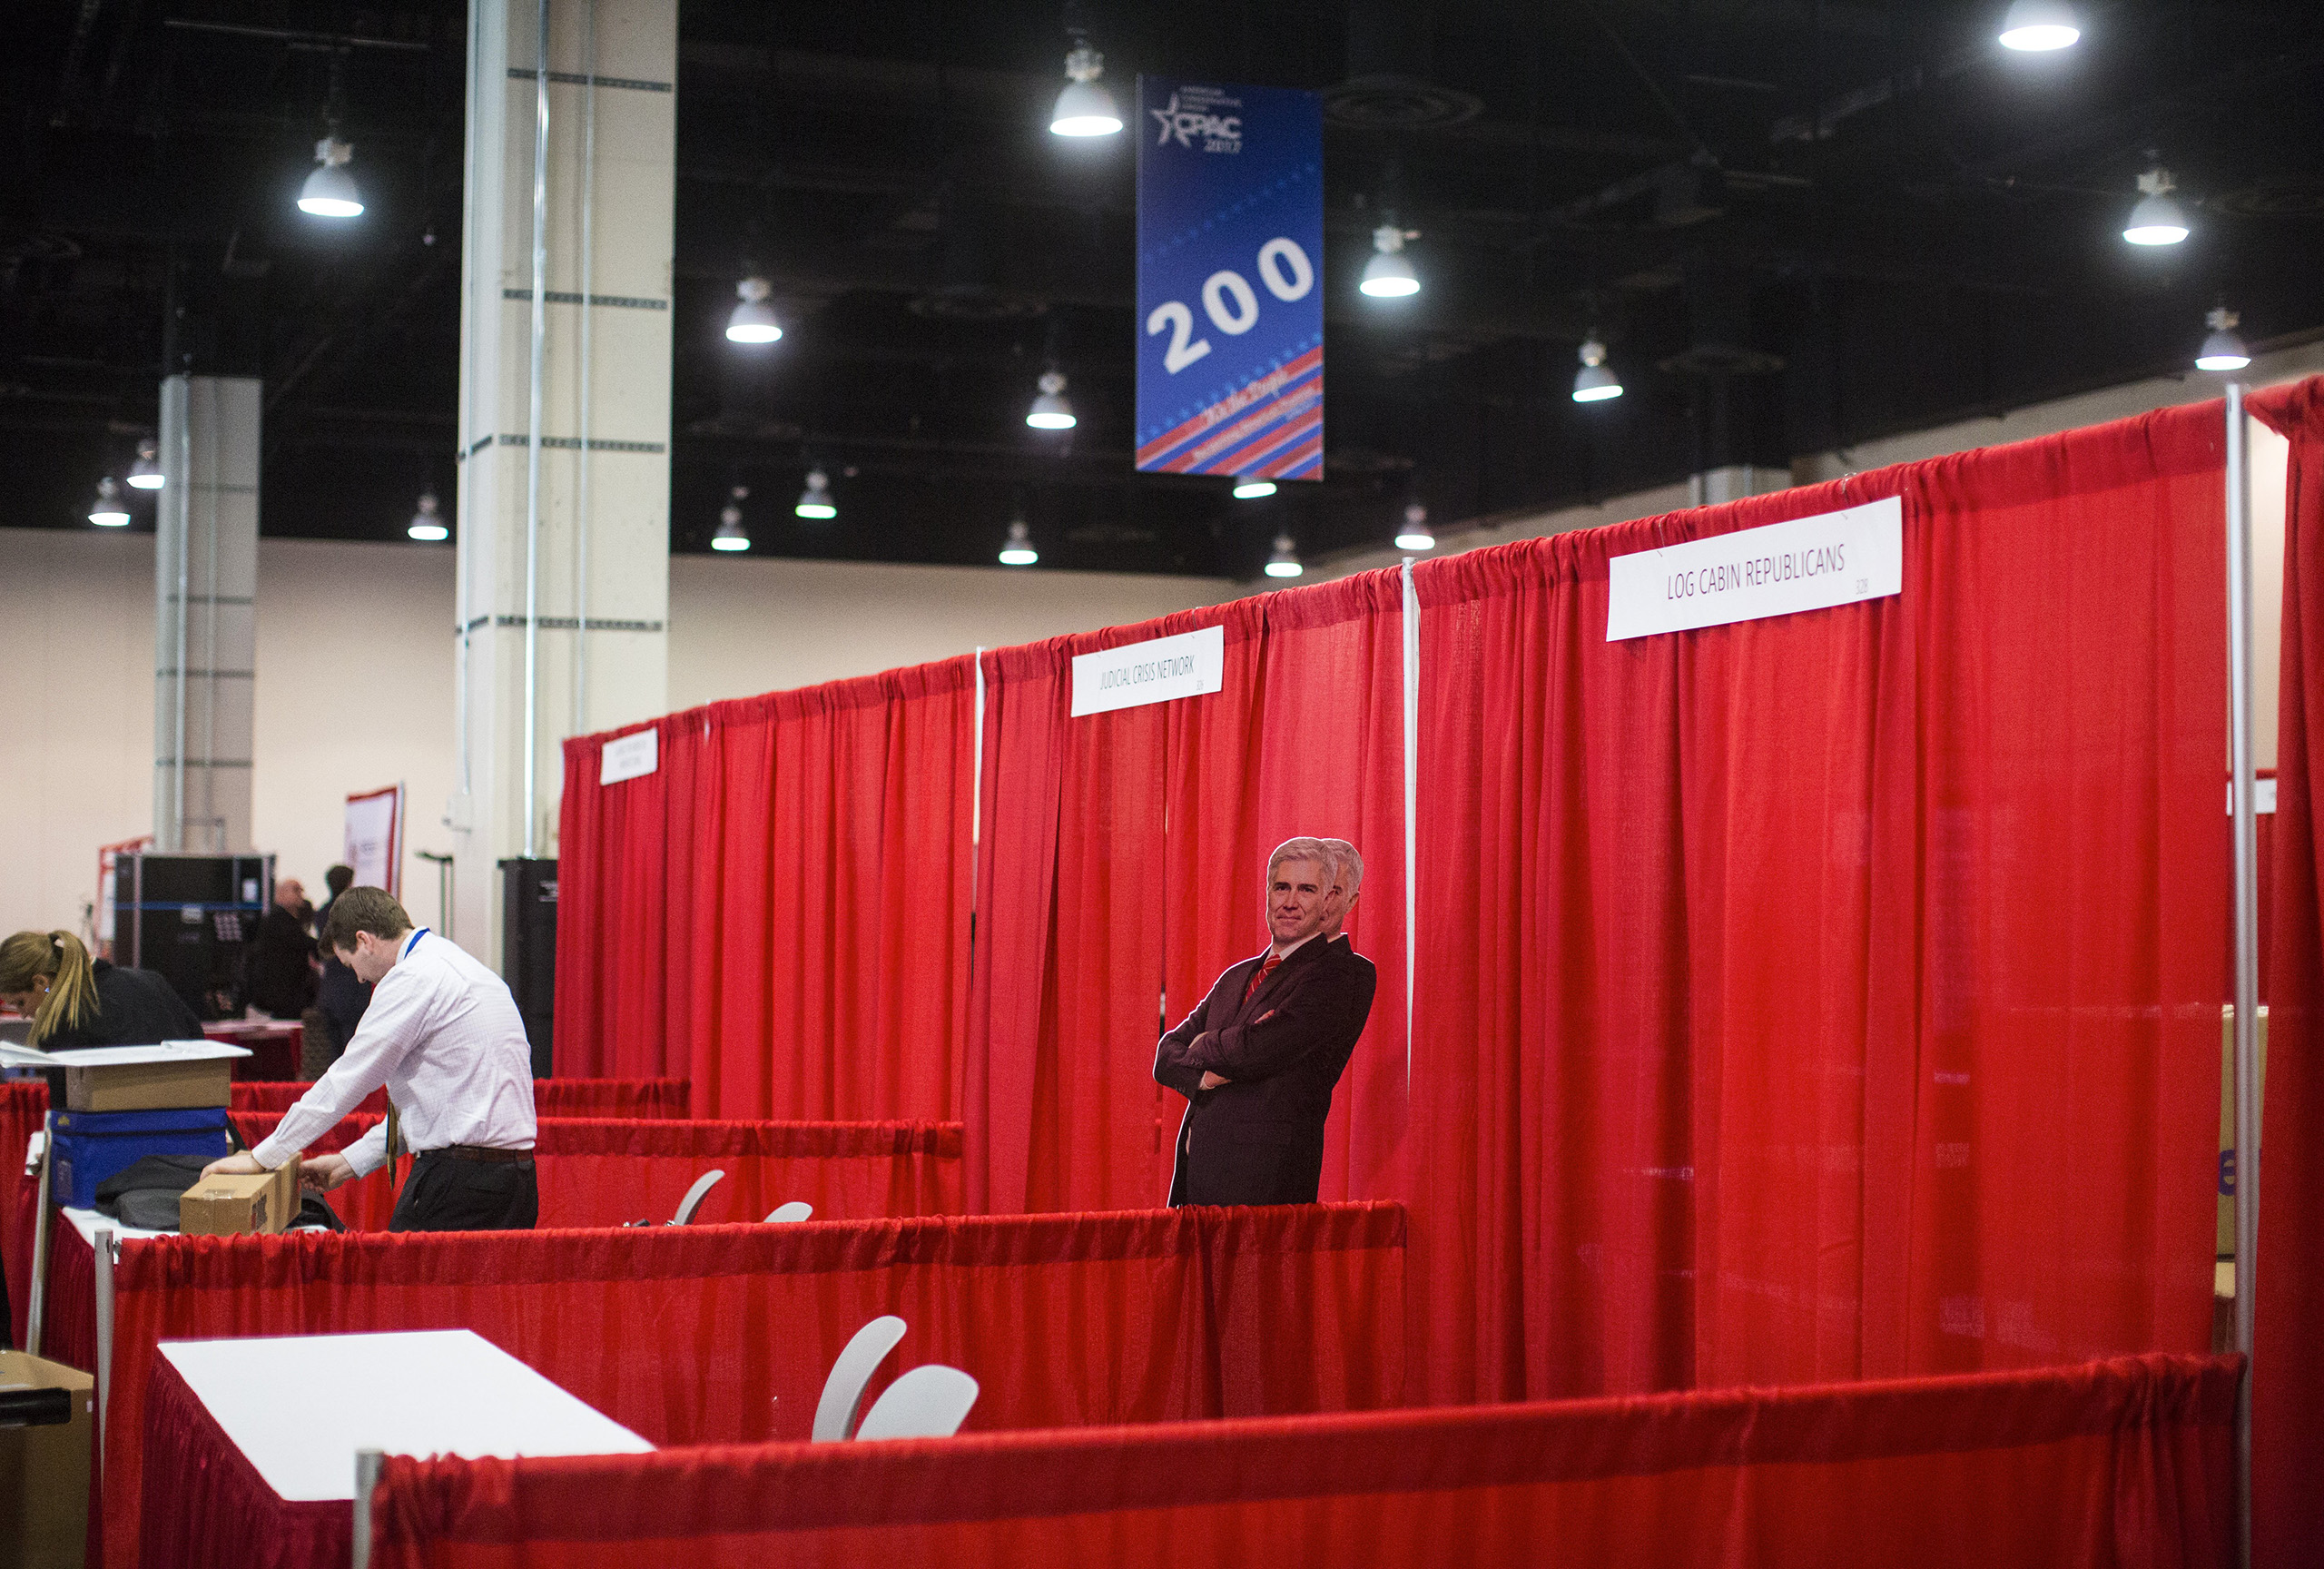 Cardboard cutouts of Judge Gorsuch at the Conservative Political Action Conference in National Harbor, Md., Feb. 22, 2017.